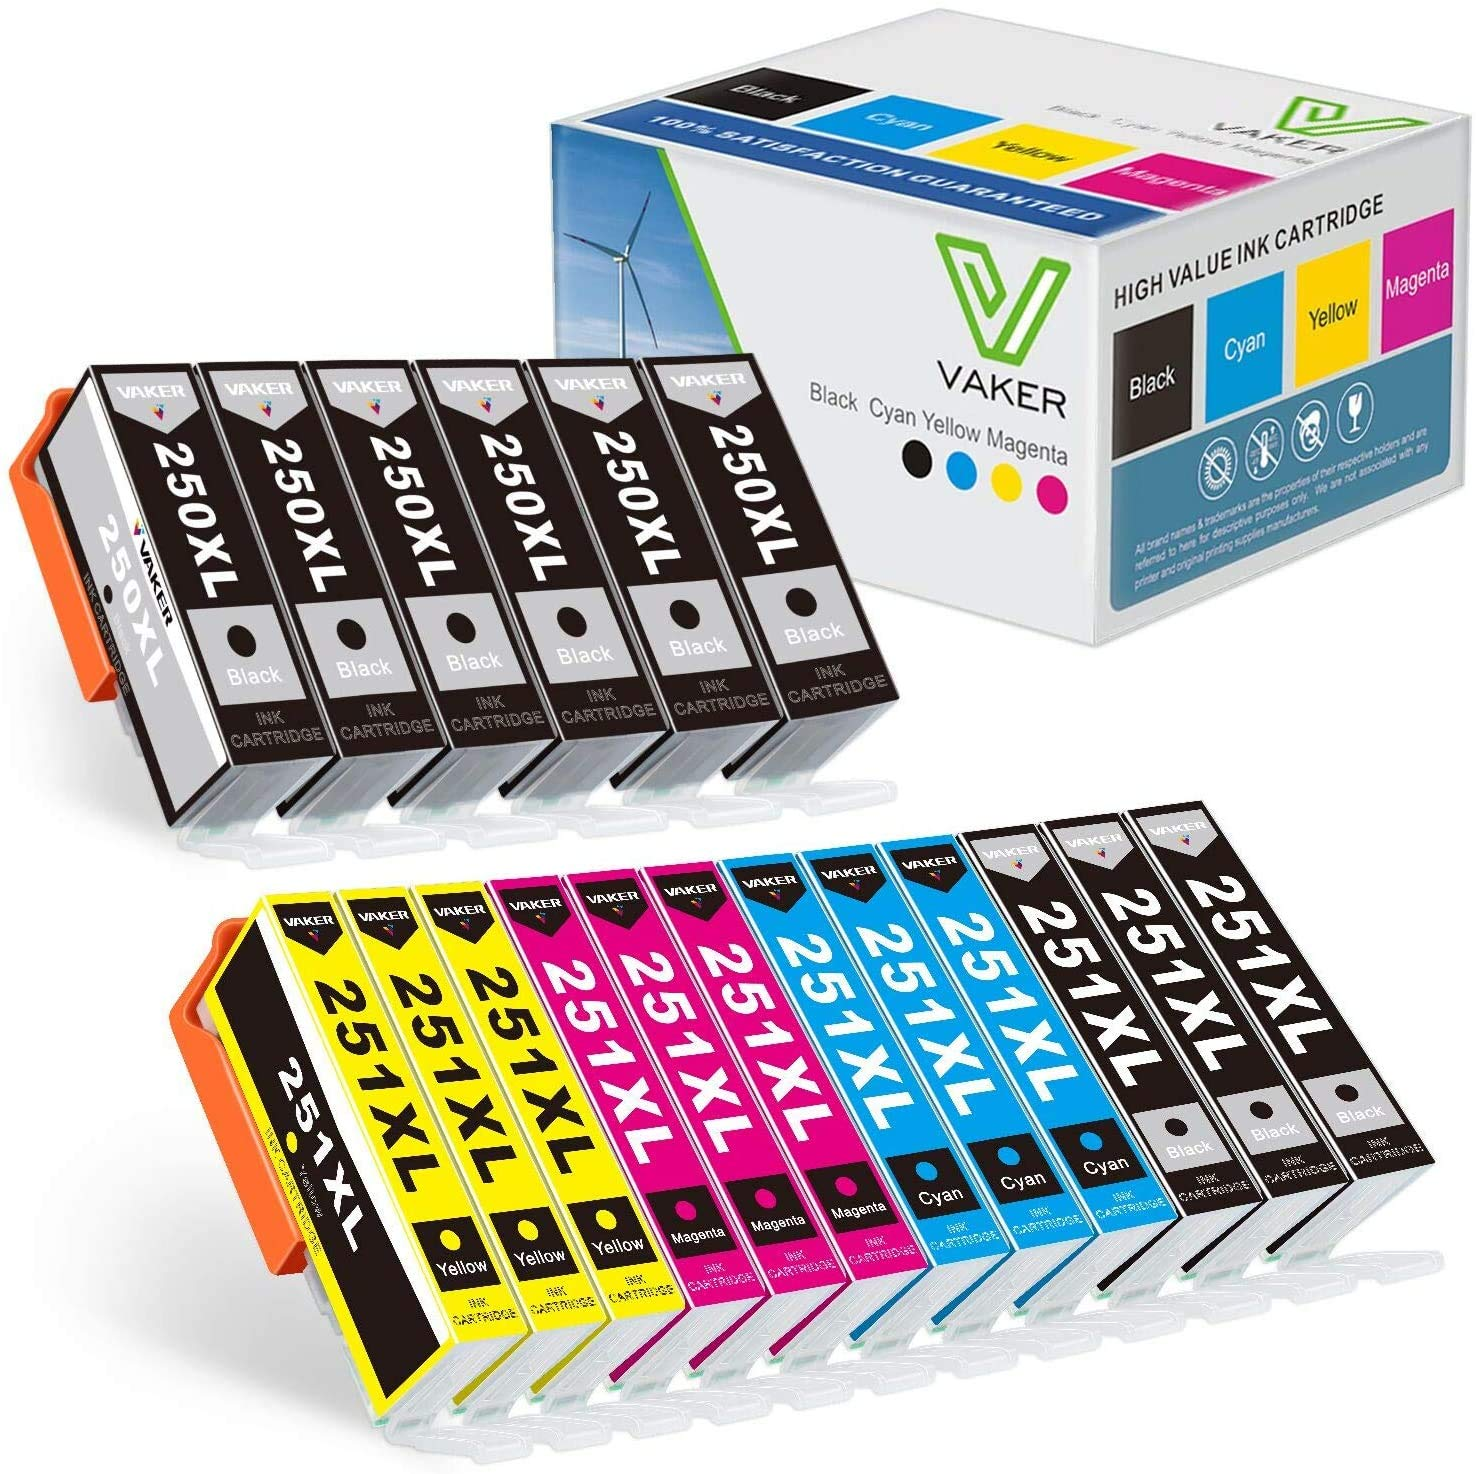 VAKER Compatible 250 251 XL Ink Cartridge Replacement for Canon PGI-250XL CLI-251XL Ink for Canon PIXMA MX922 IX6820 IP7220 MG6620 MG7120 Printer 18-Pack(6 PGBK 3 Black 3 Cyan 3 Magenta 3 Yellow)